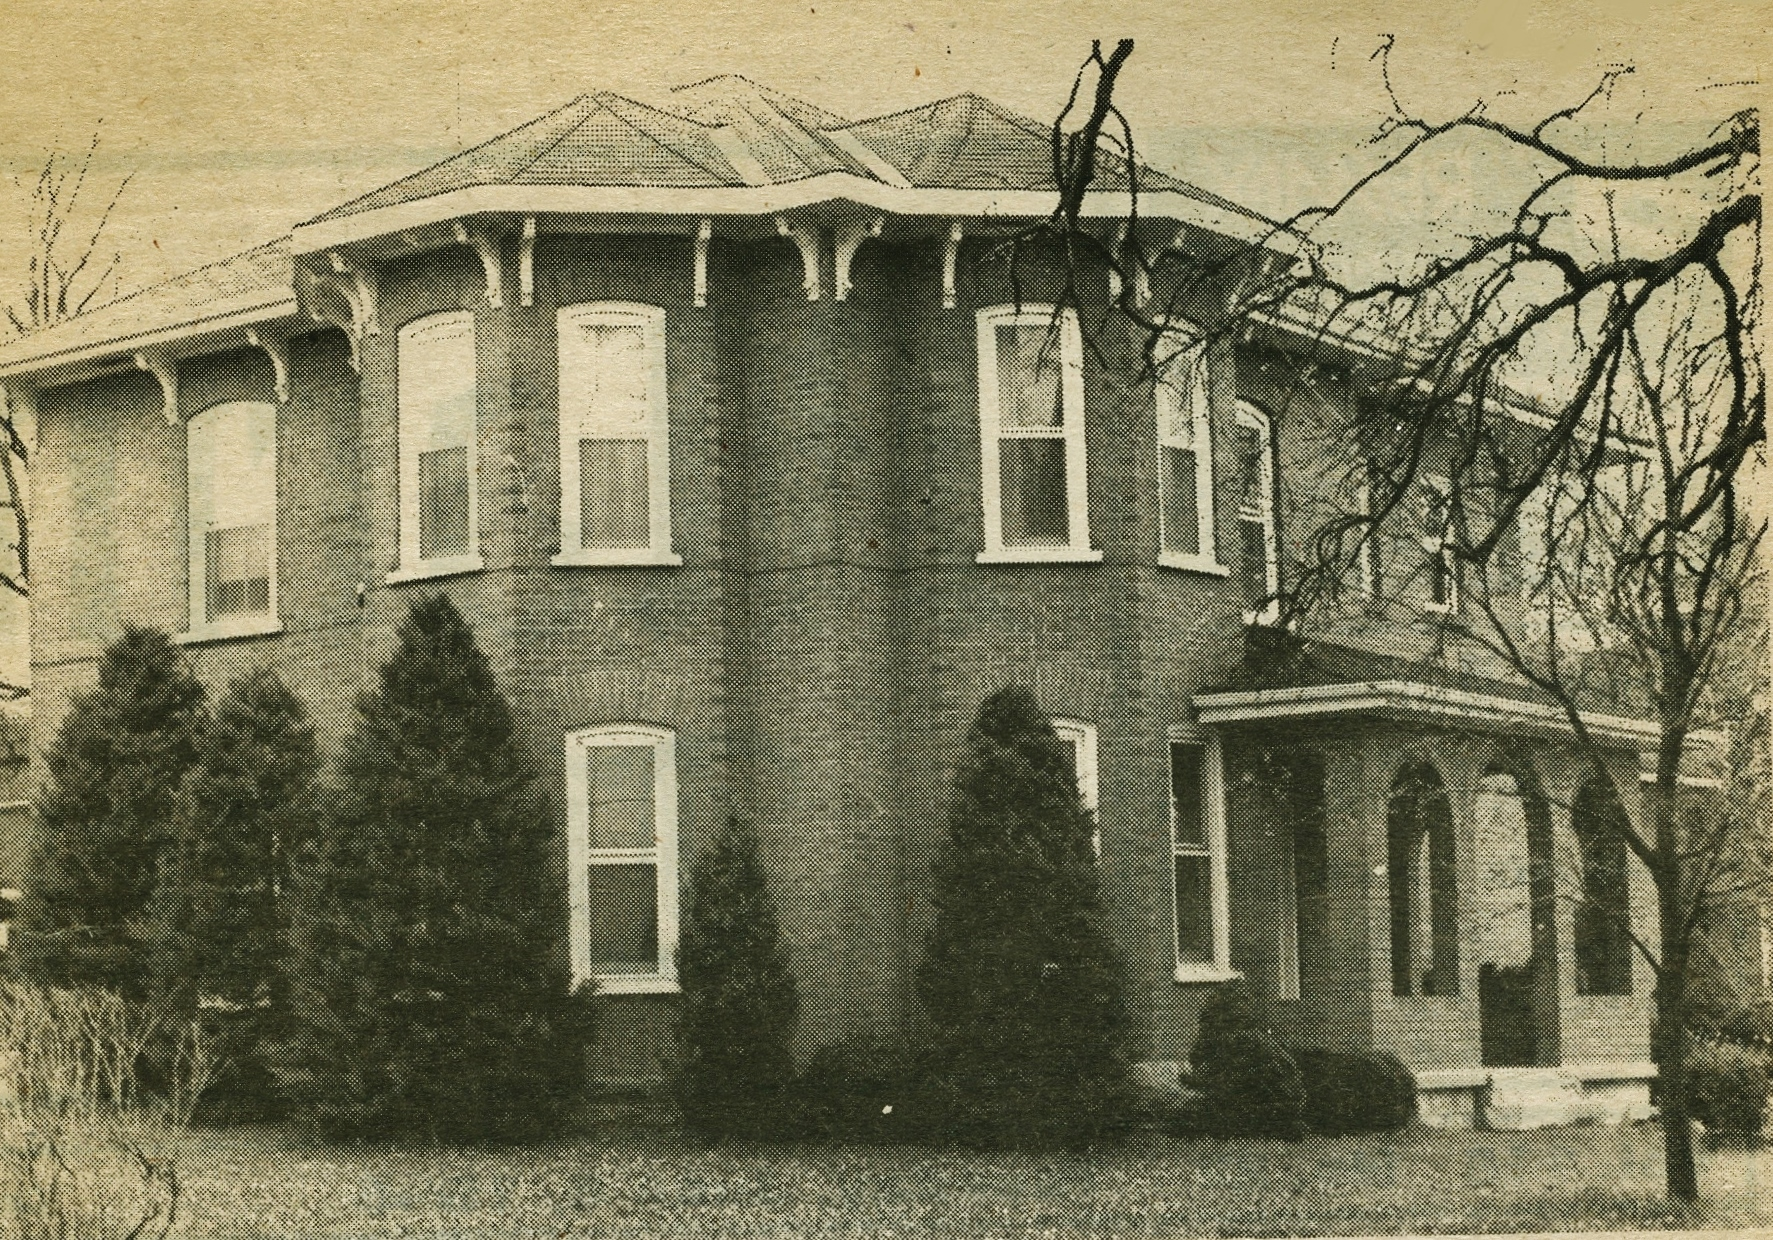 #10 Jones/ Horvath/ Wood House, Bursthall St. & Highway 7,